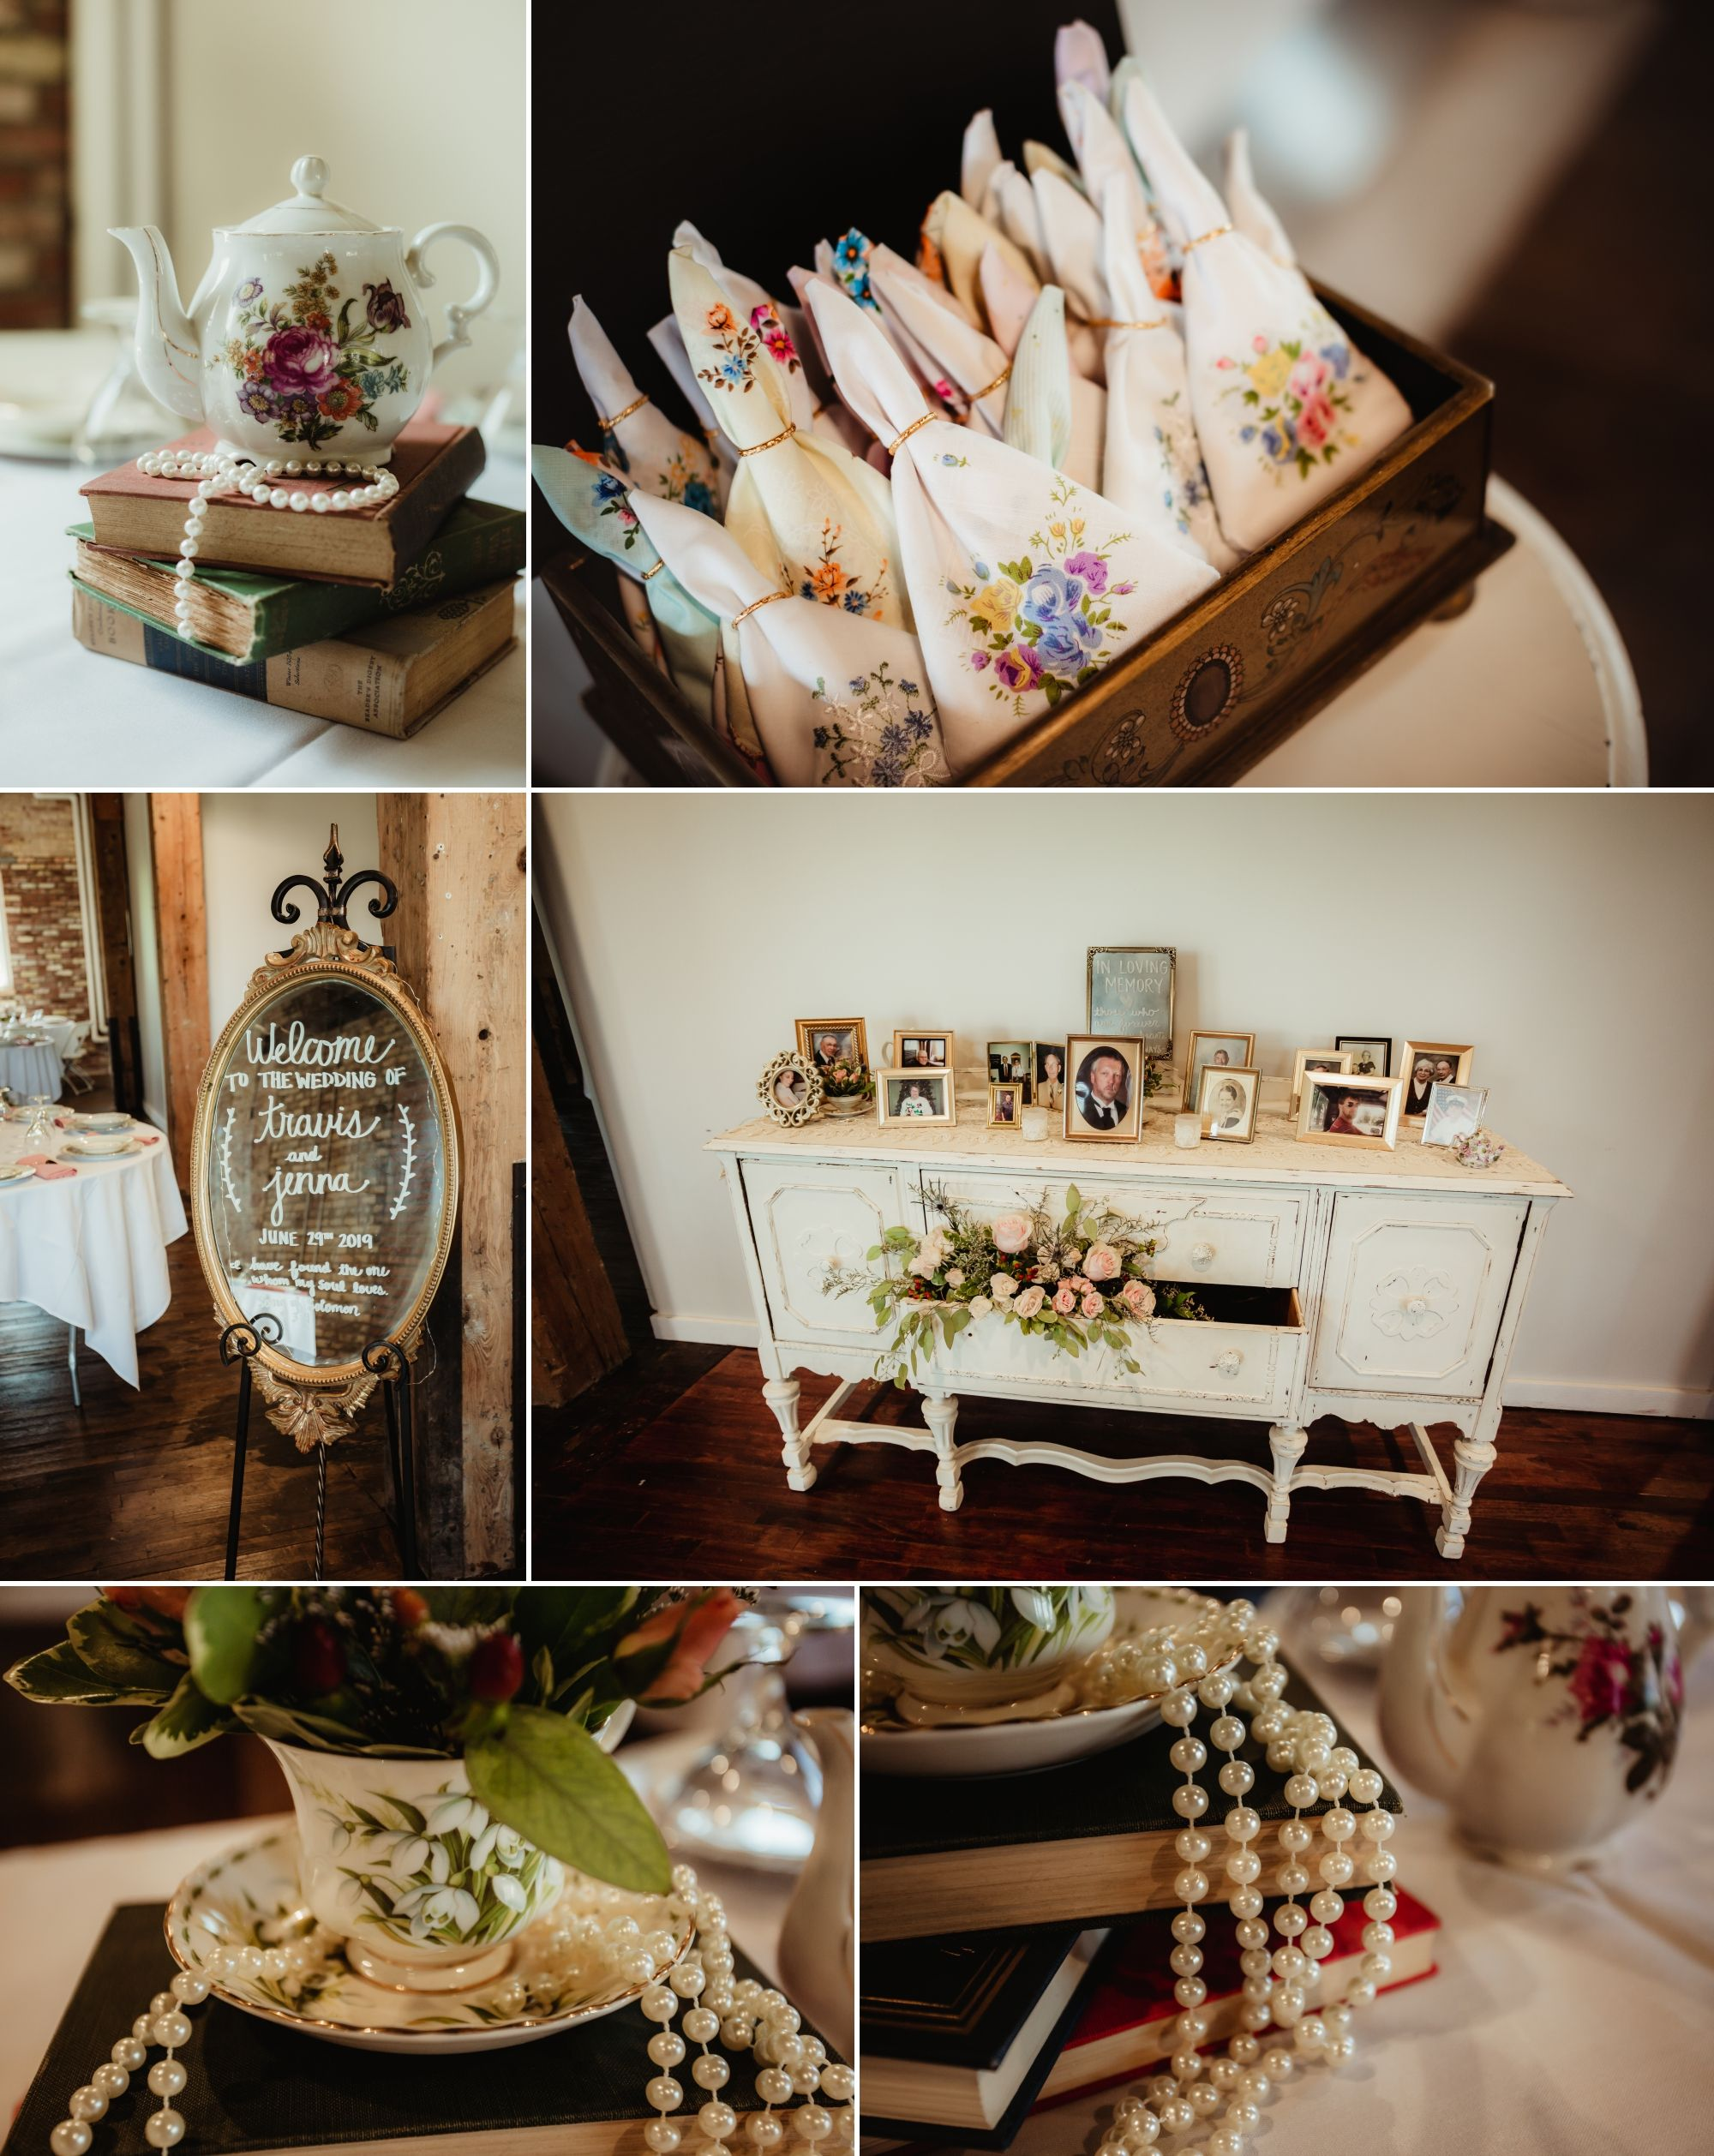 Wedding details: books, china, handkerchiefs, photos of loved ones, welcome mirror.